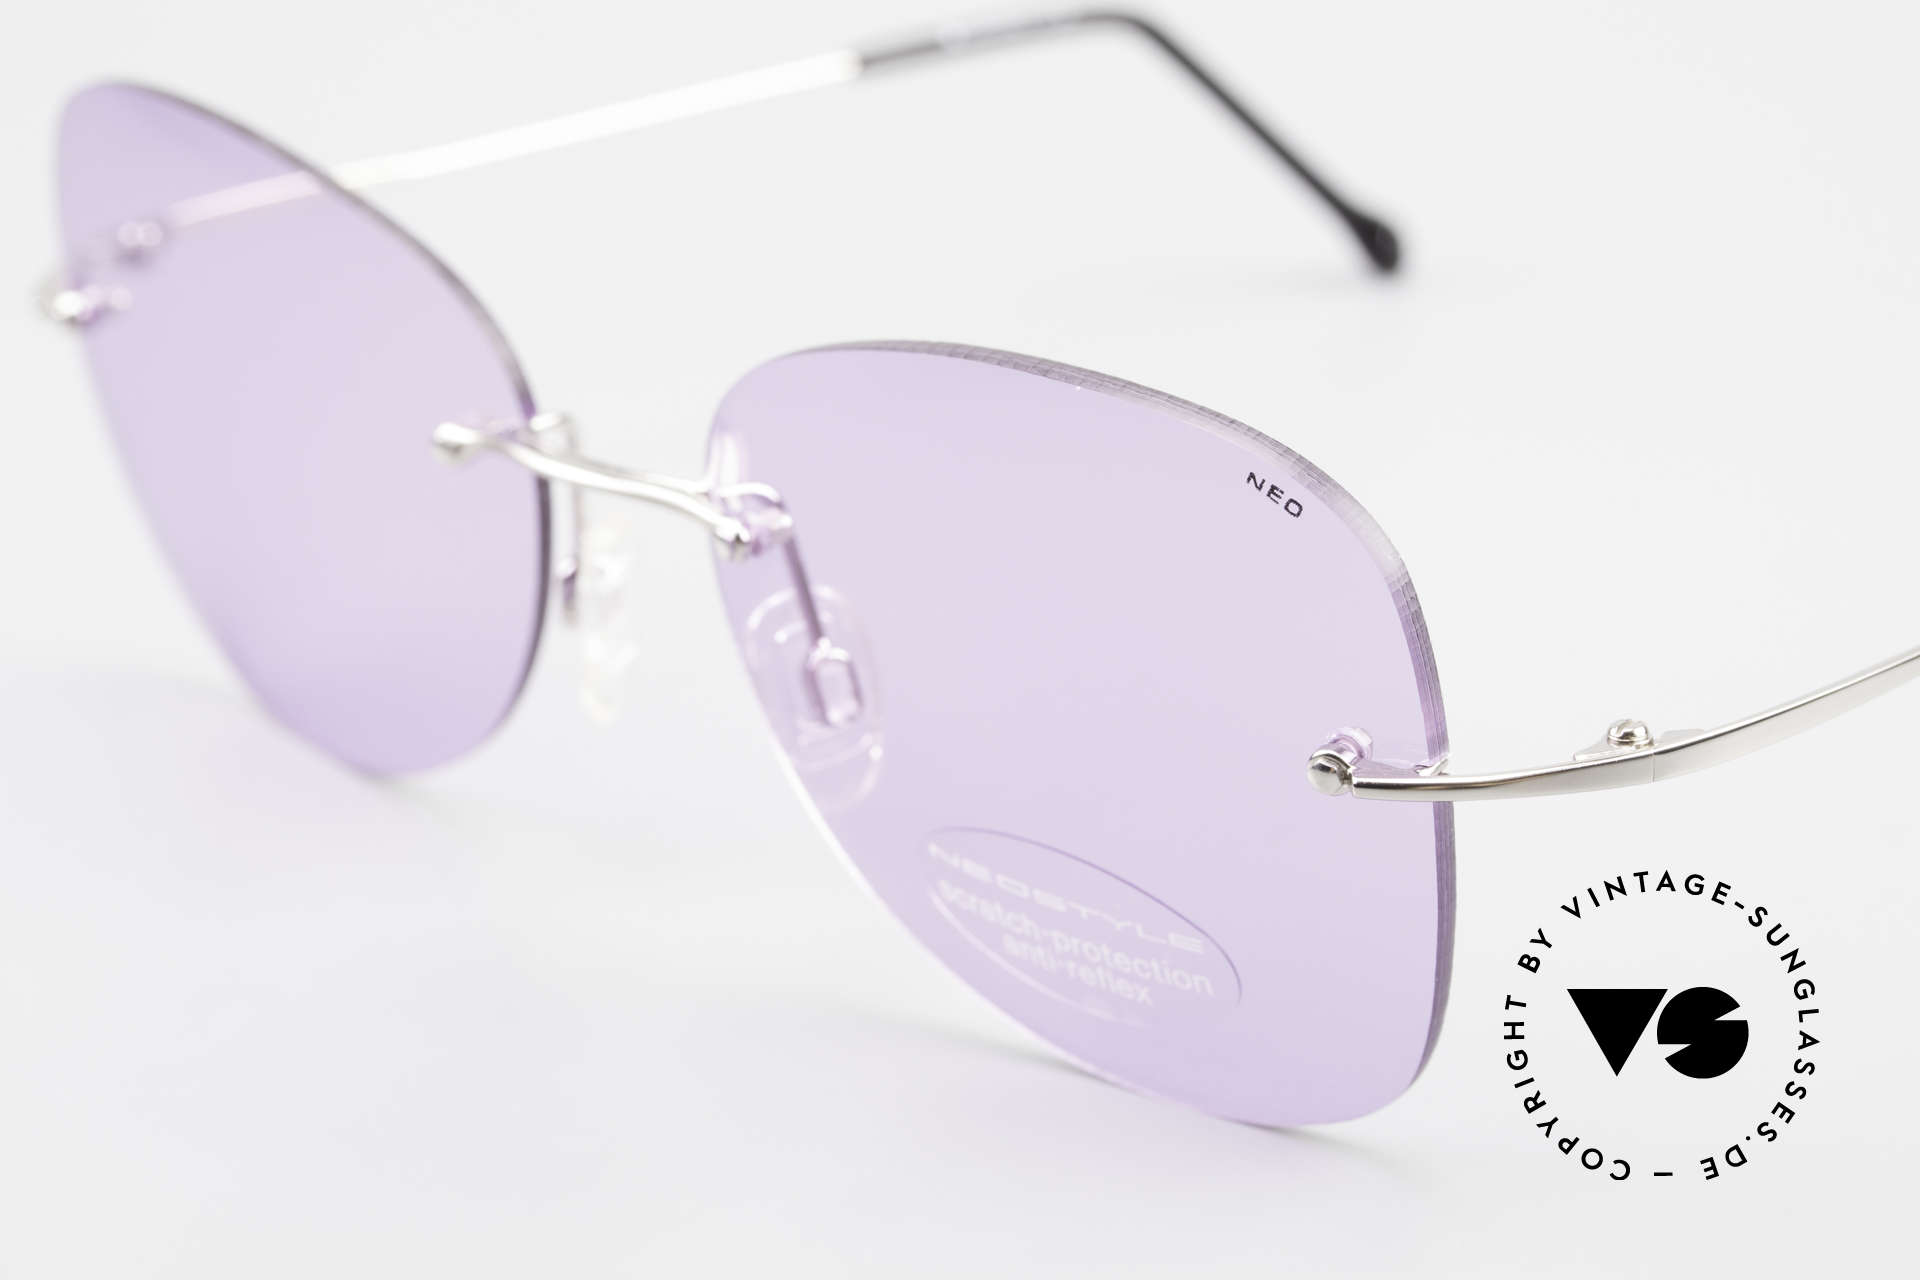 Neostyle Holiday 2051 Rimless XXL Sunglasses Ladies, 1st class quality from Germany (100% UV protect.), Made for Women